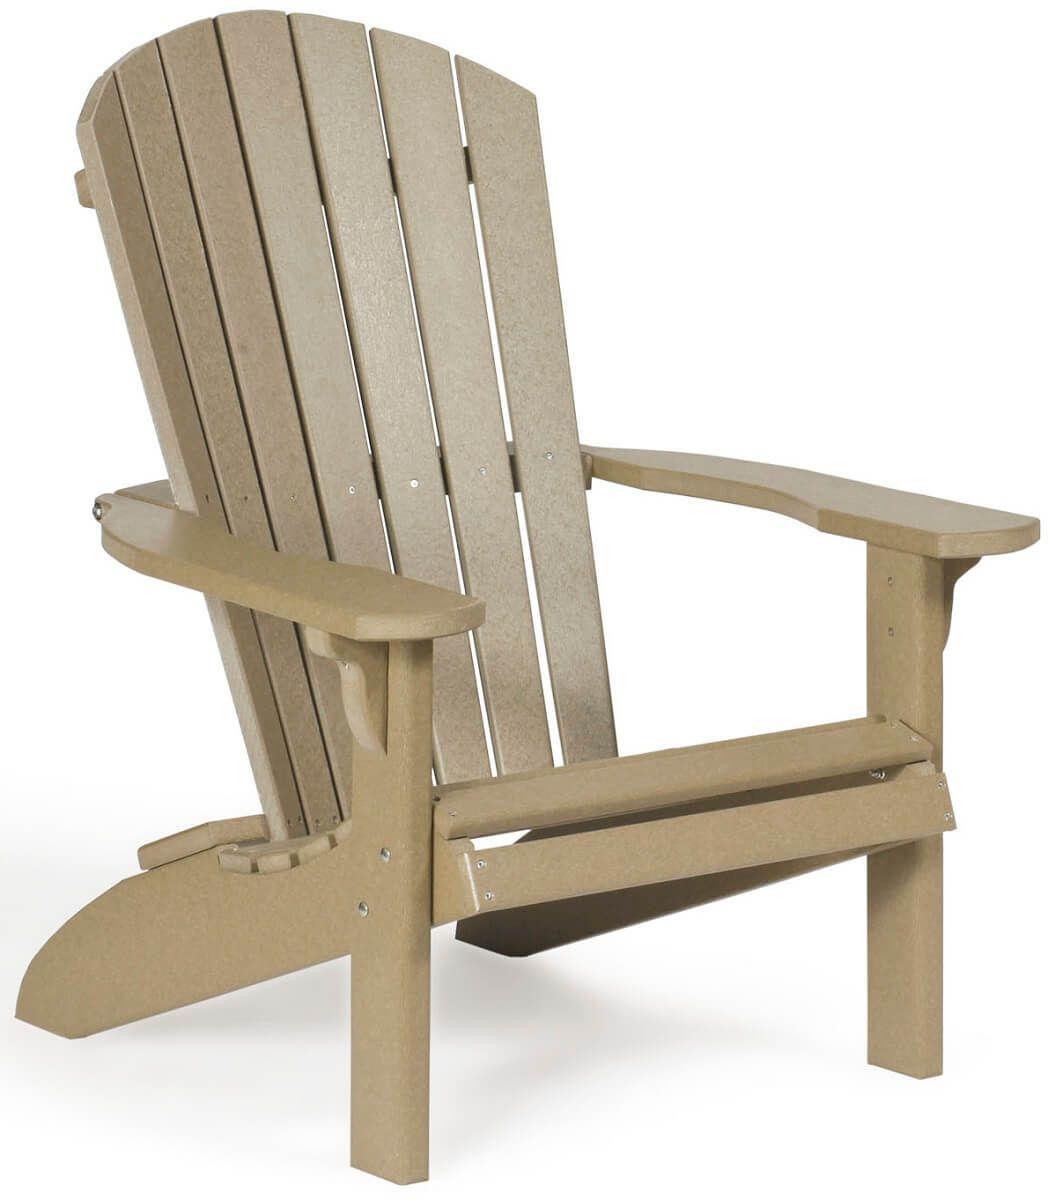 Weatherwood Poly Bahia Adirondack Chair